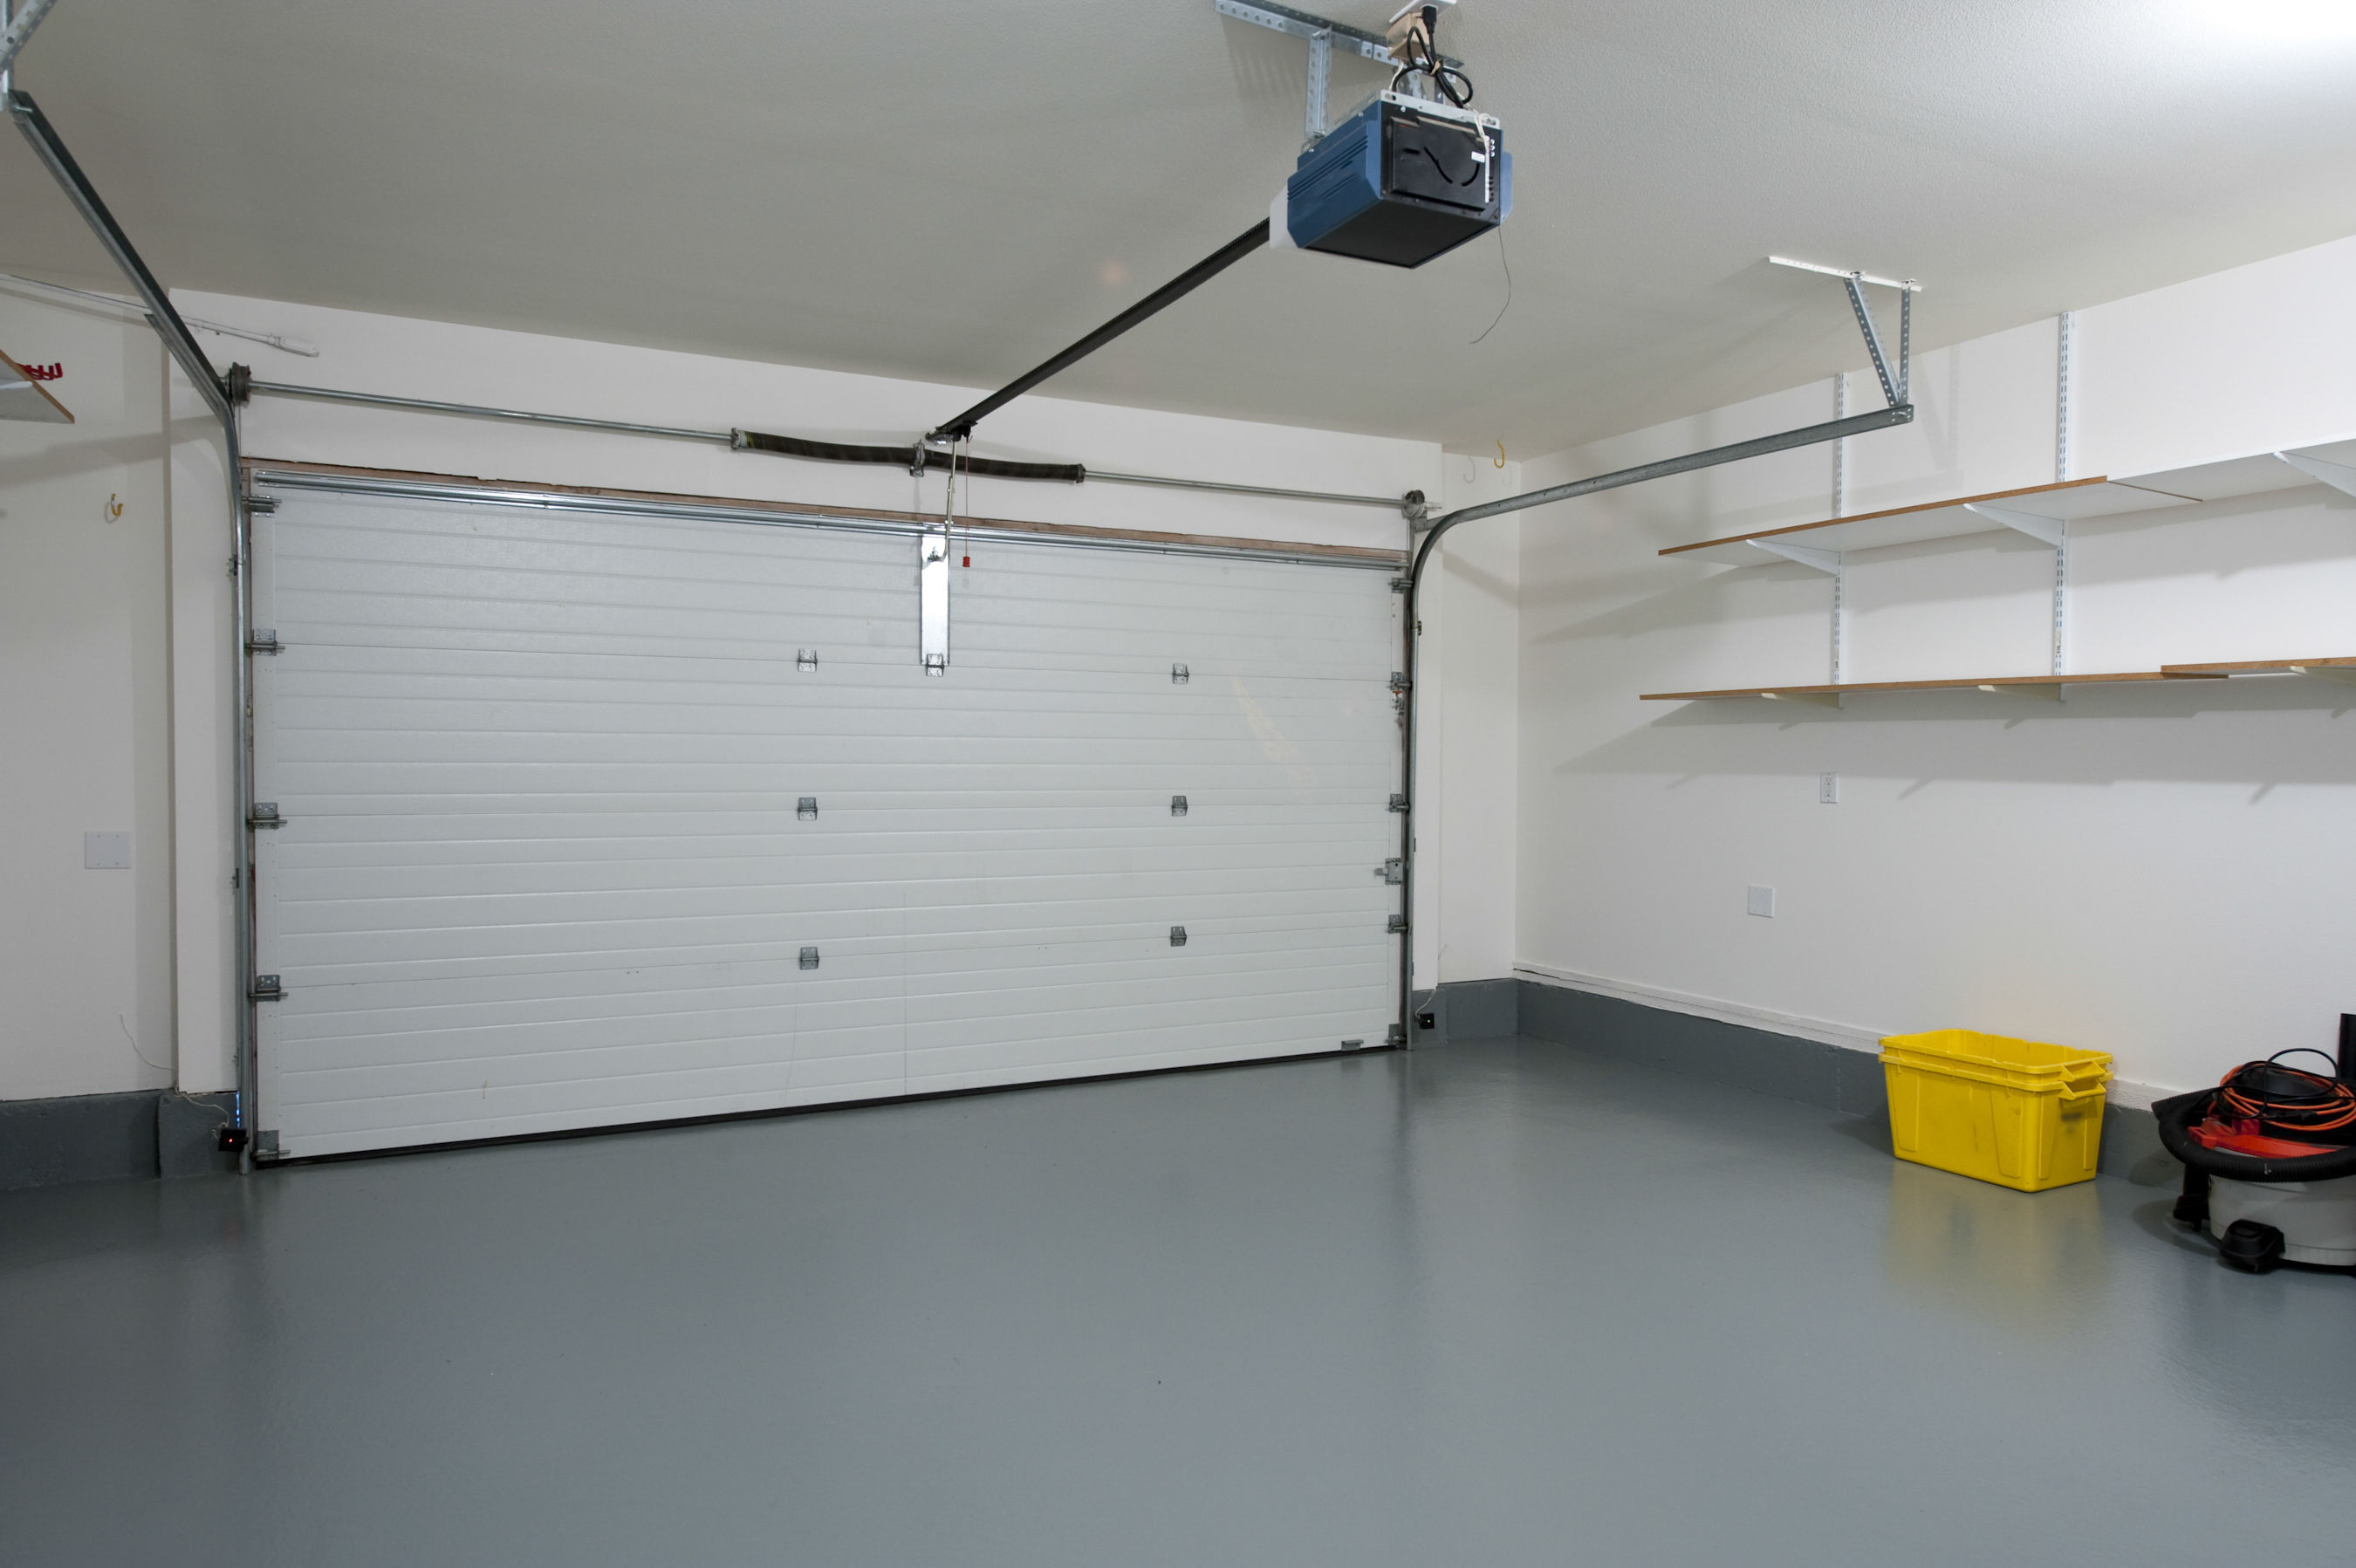 Garage Armour Epoxy Concrete Sealers Articles And News From Foundation Armor How